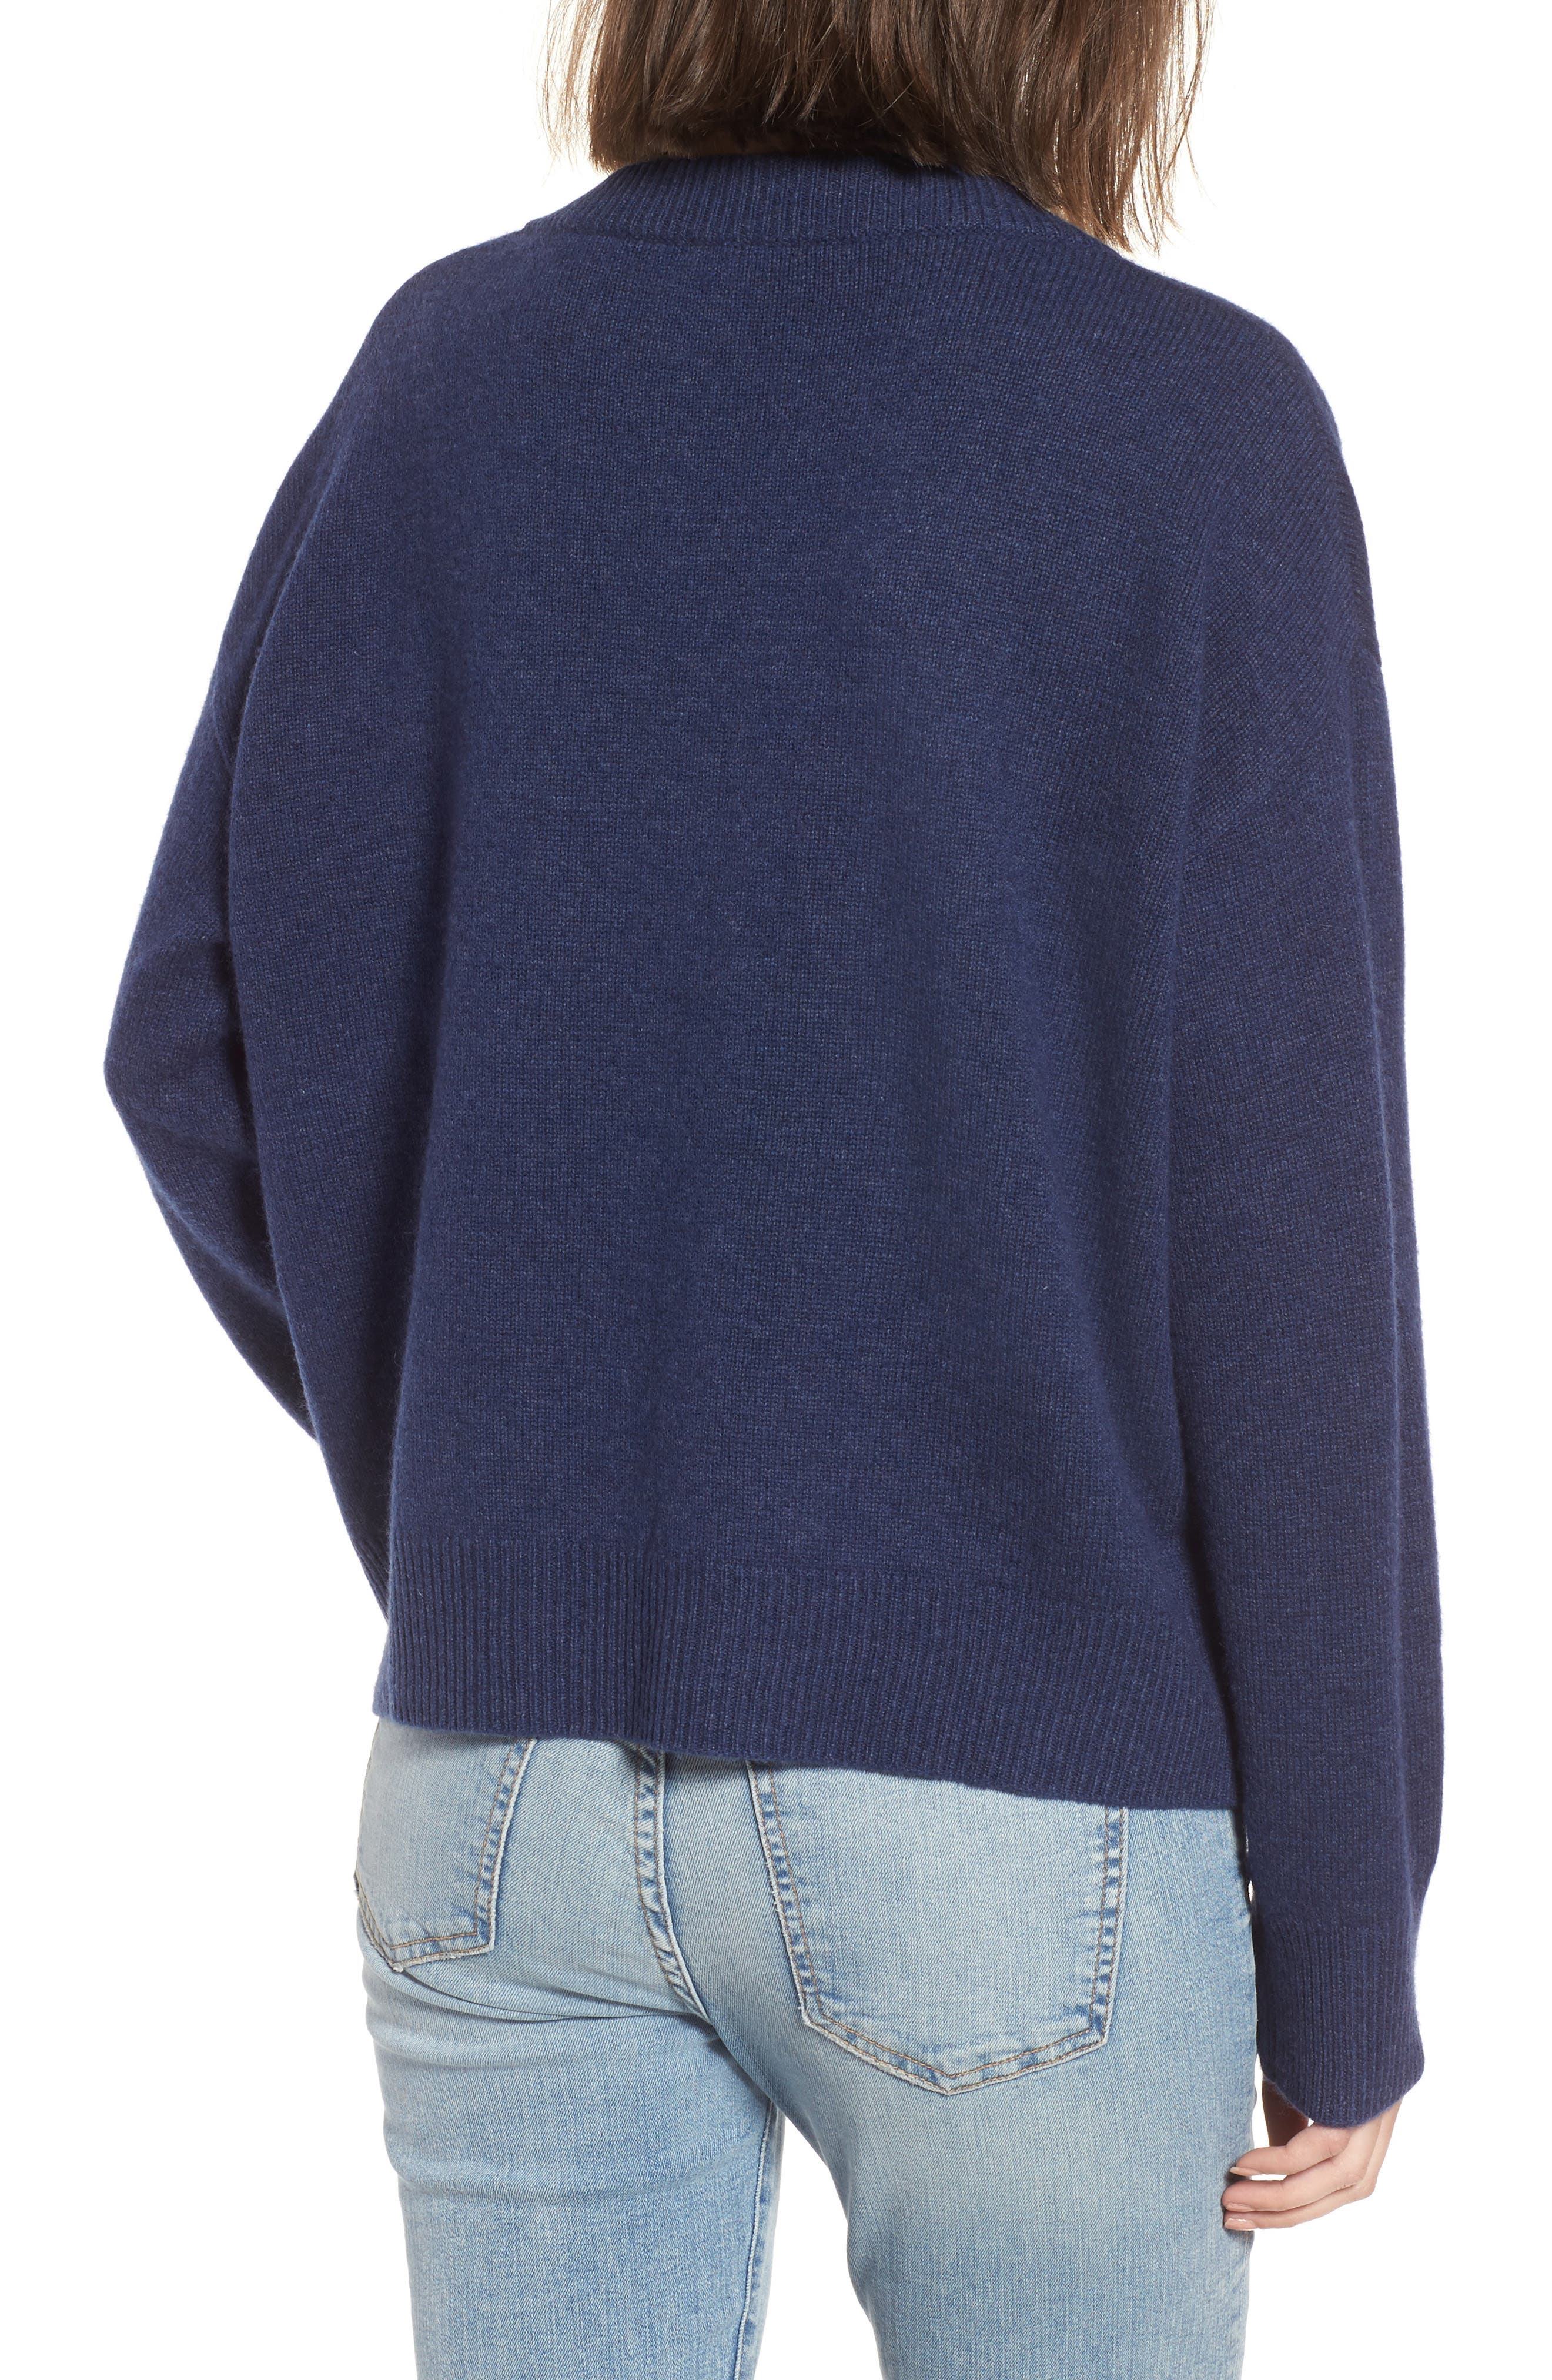 Olivia Lace-Up Sweater,                             Alternate thumbnail 7, color,